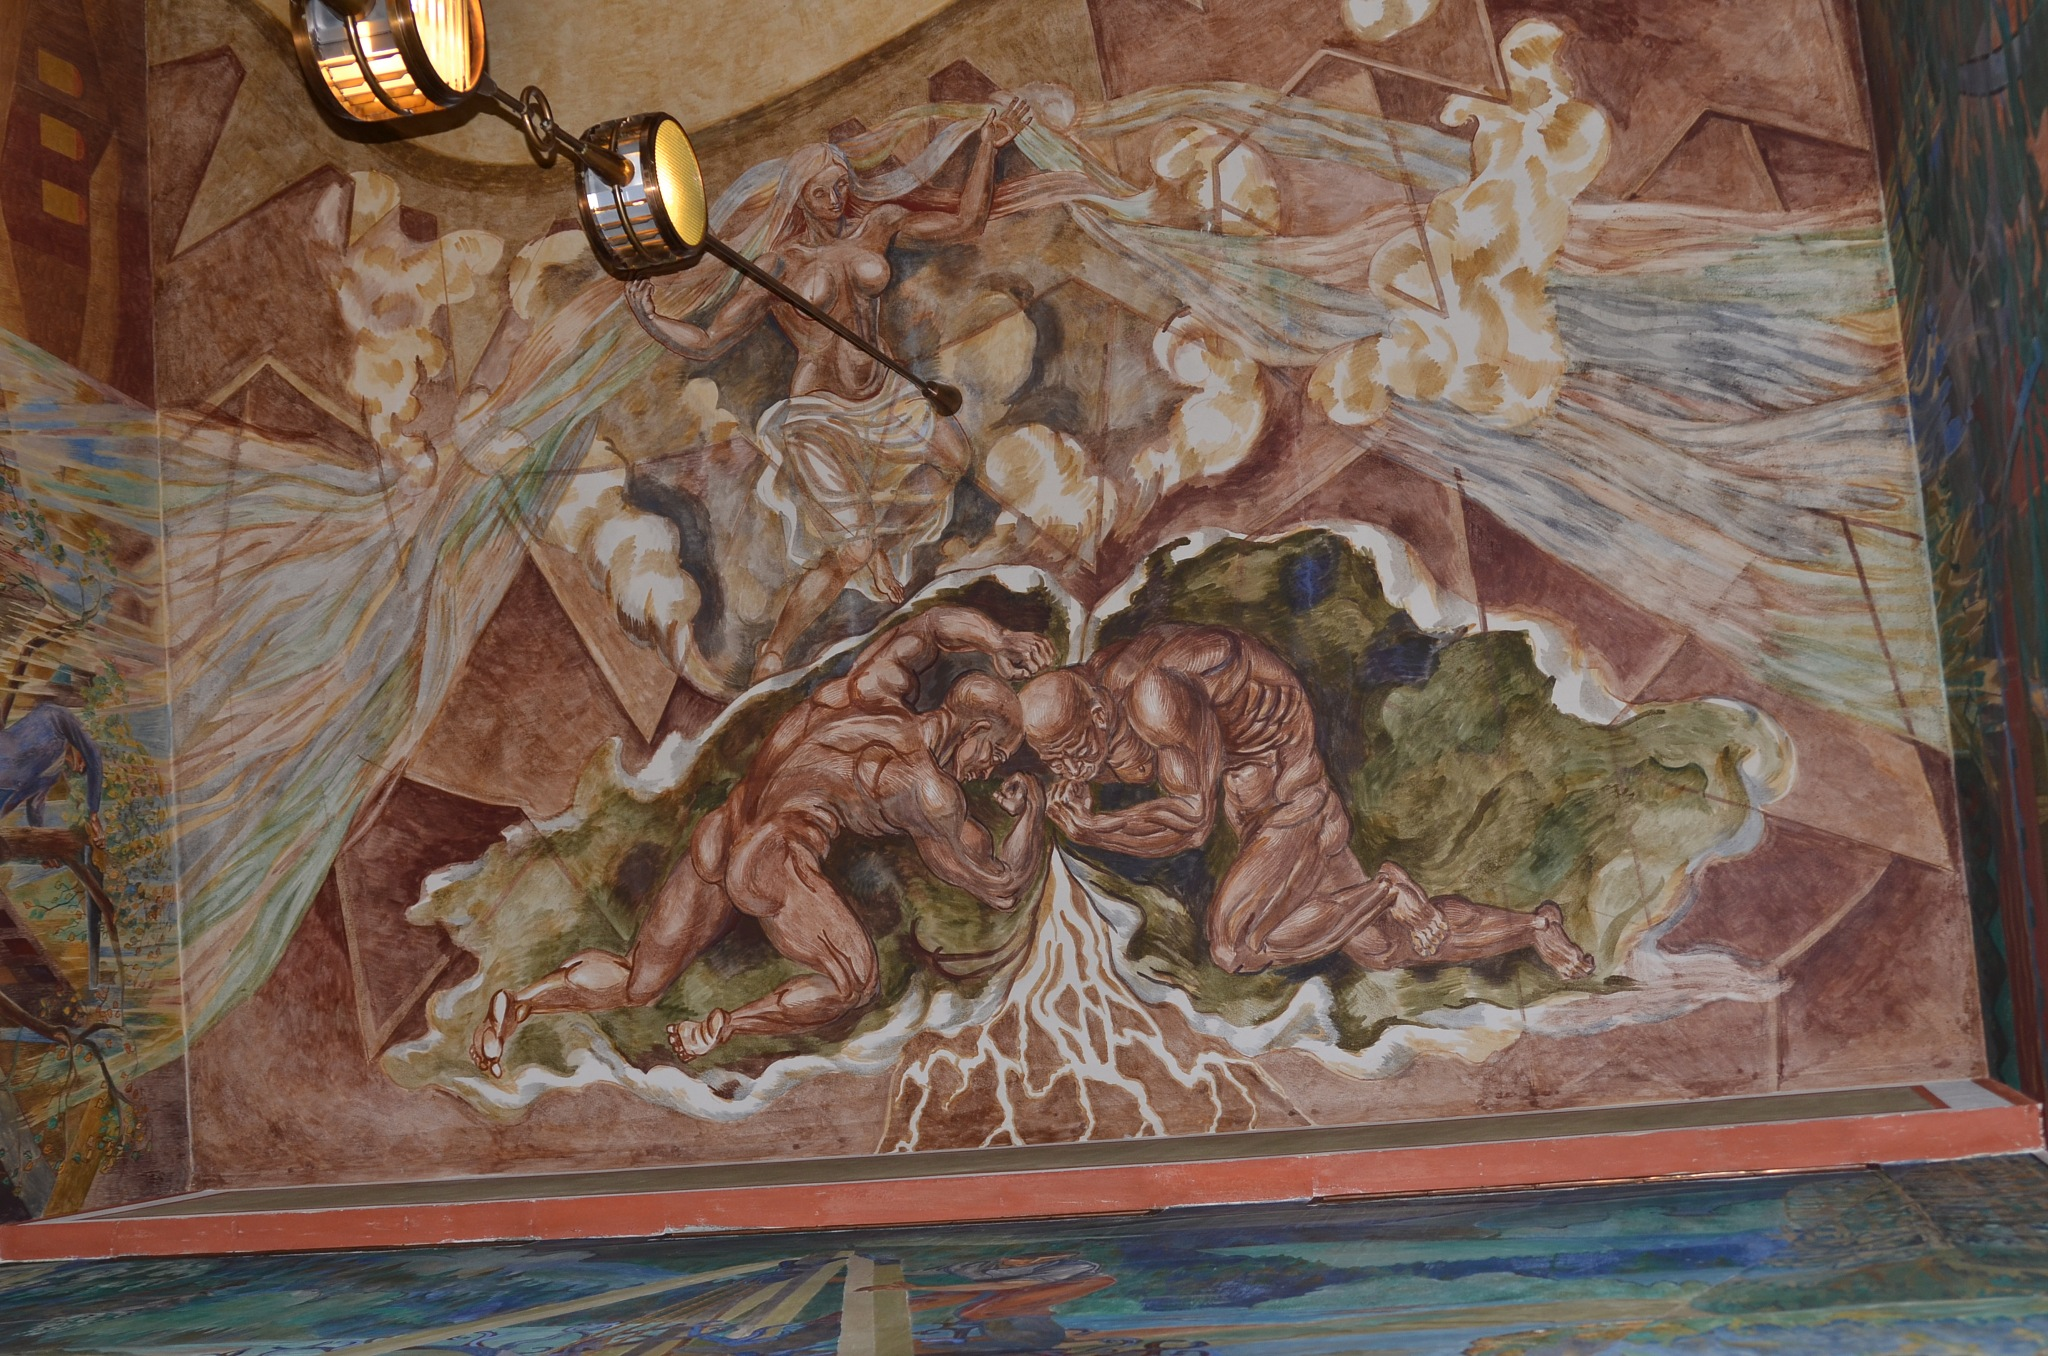 Ceiling decoration in the city hall in Oslo by EsbenDK